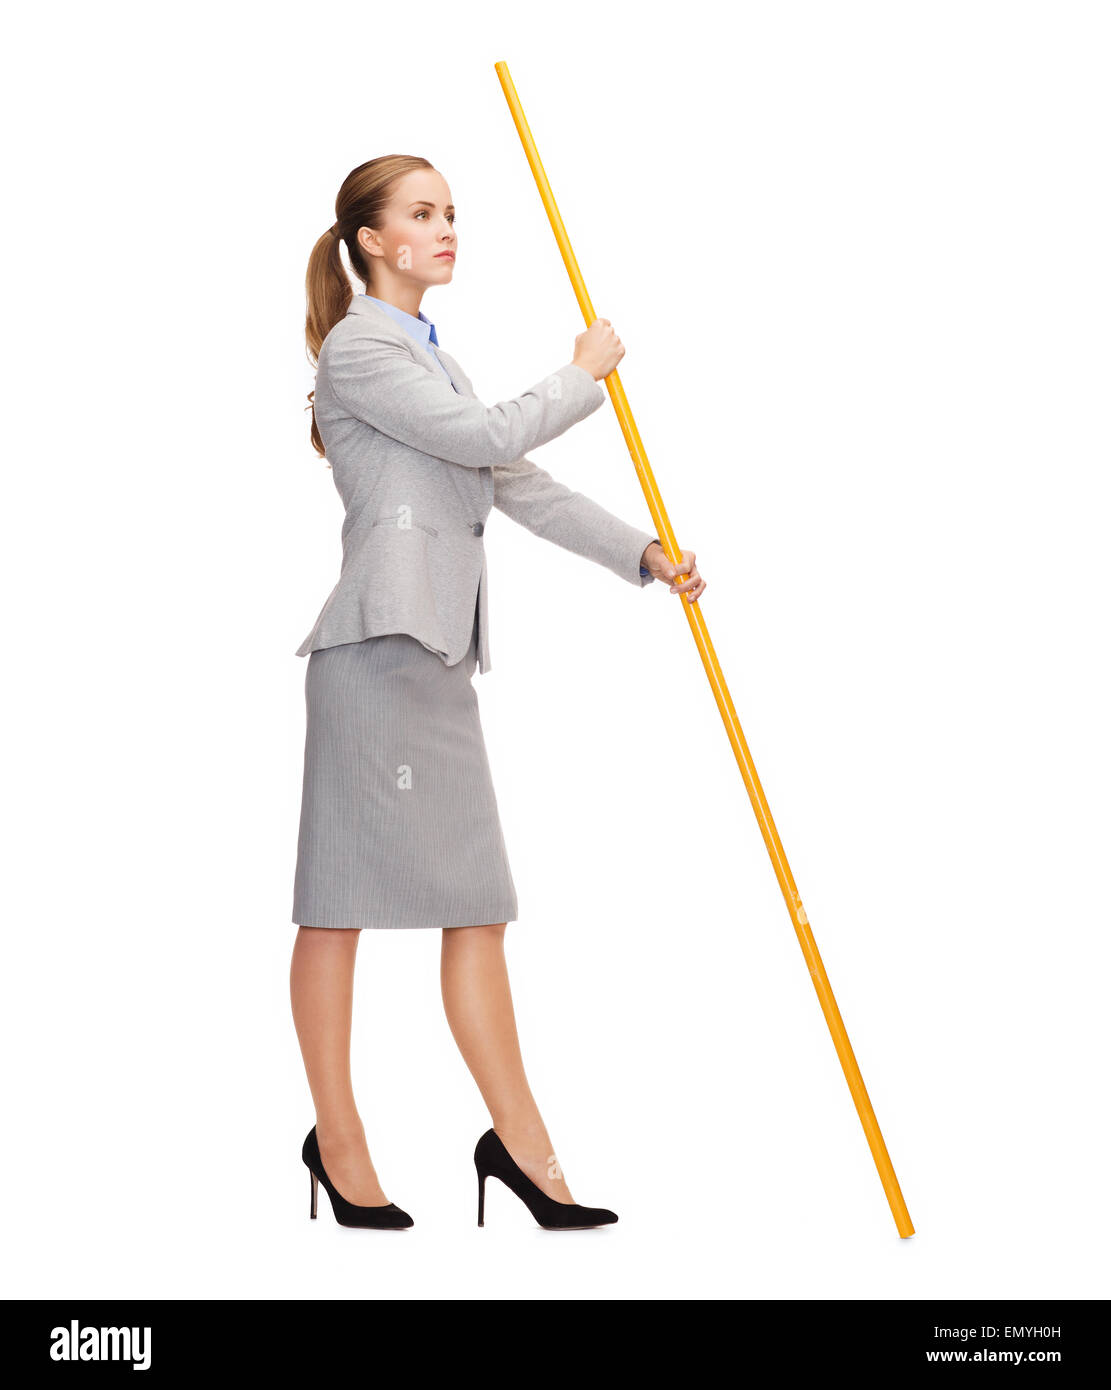 calm woman holding flagpole with imaginary flag - Stock Image